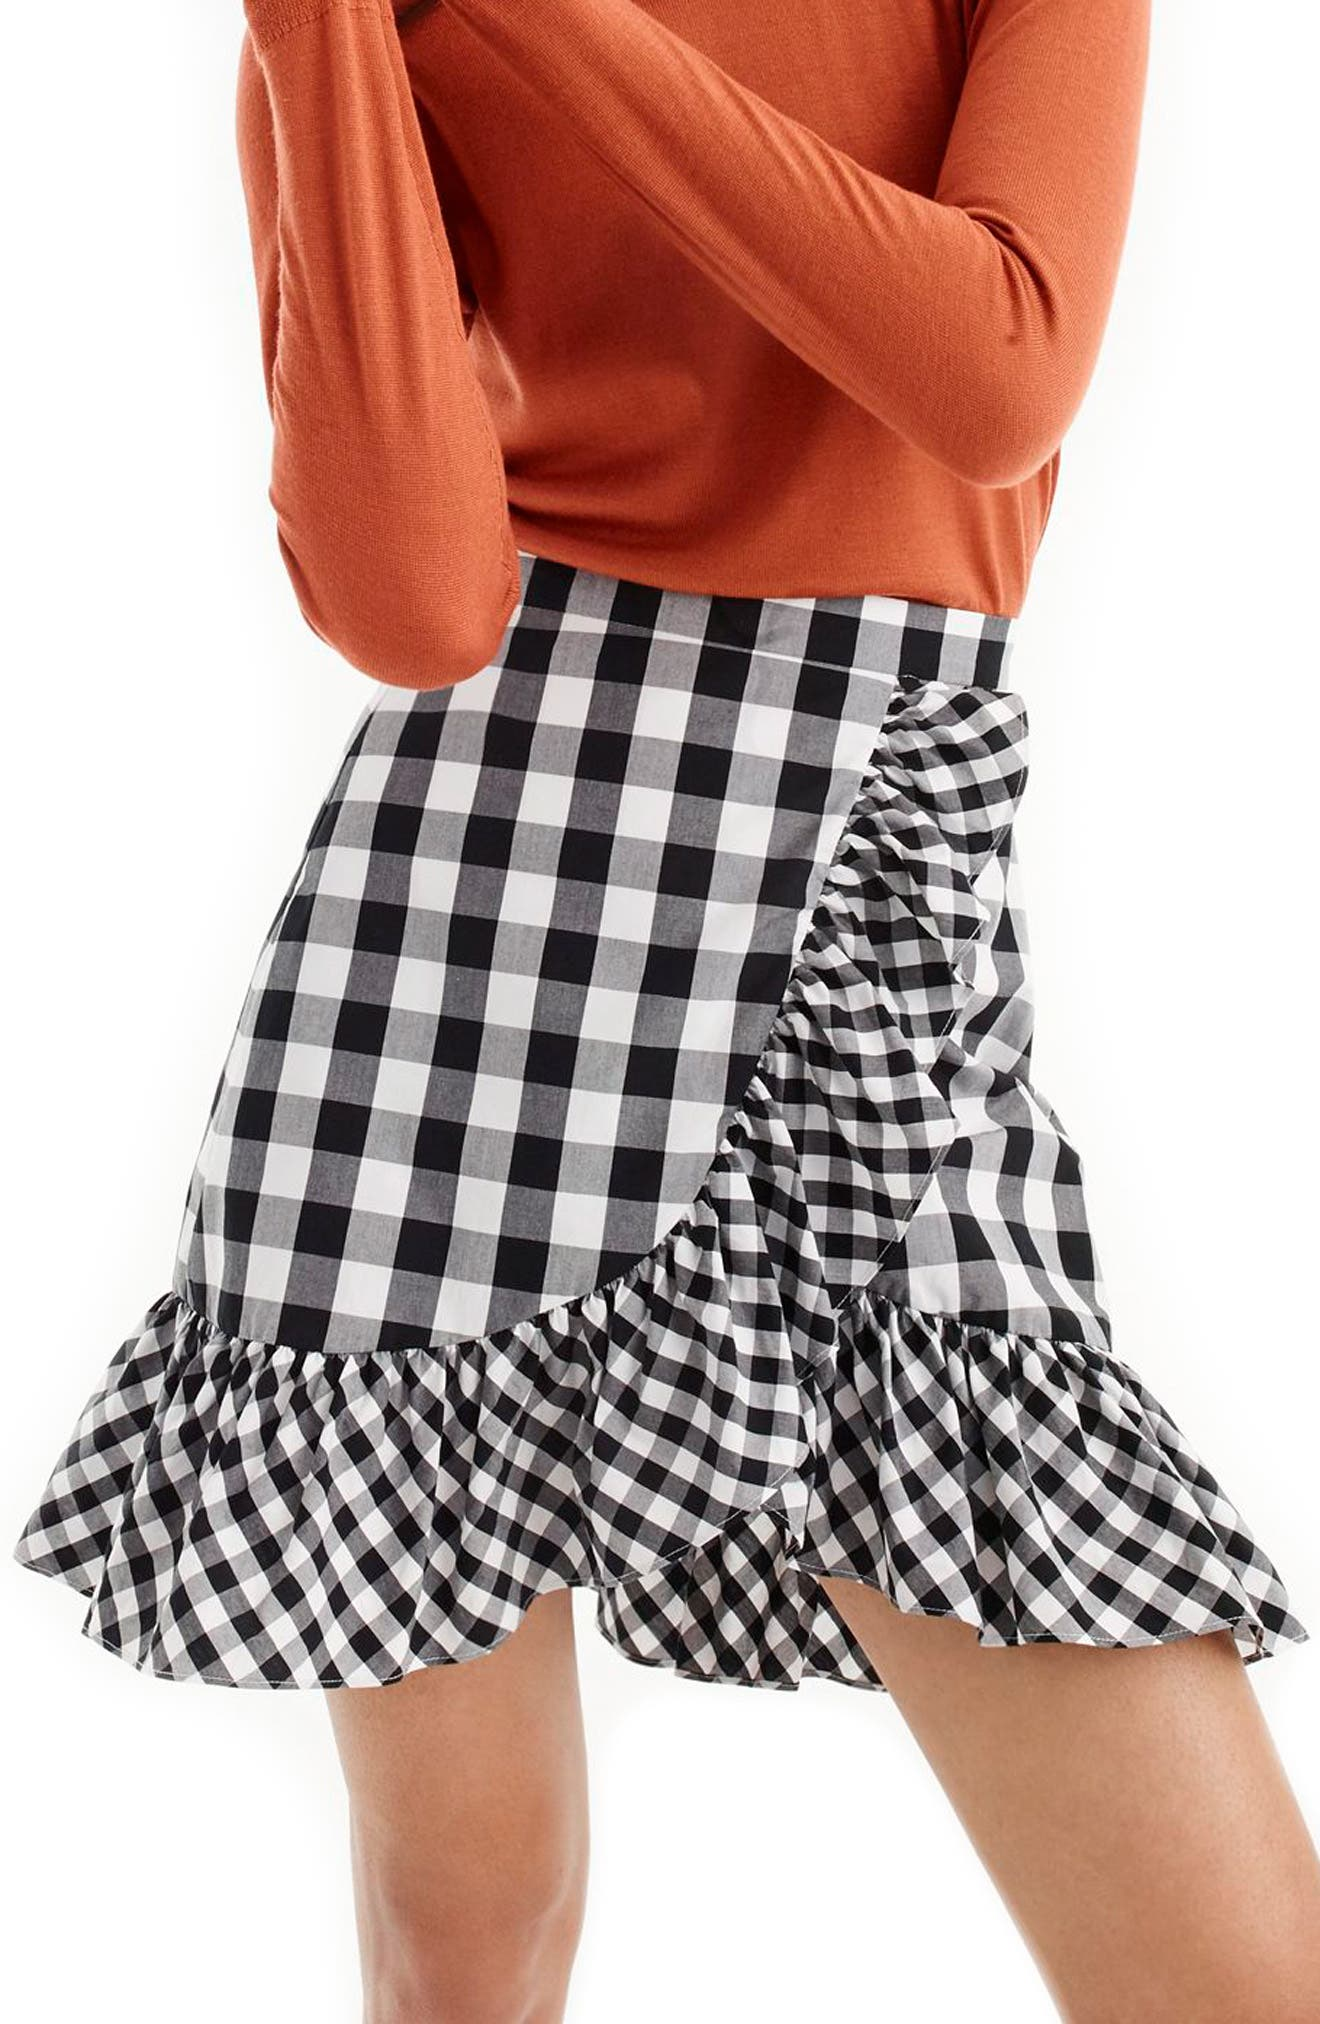 Pistachio Gingham Cotton Poplin Ruffle Skirt,                         Main,                         color, Black